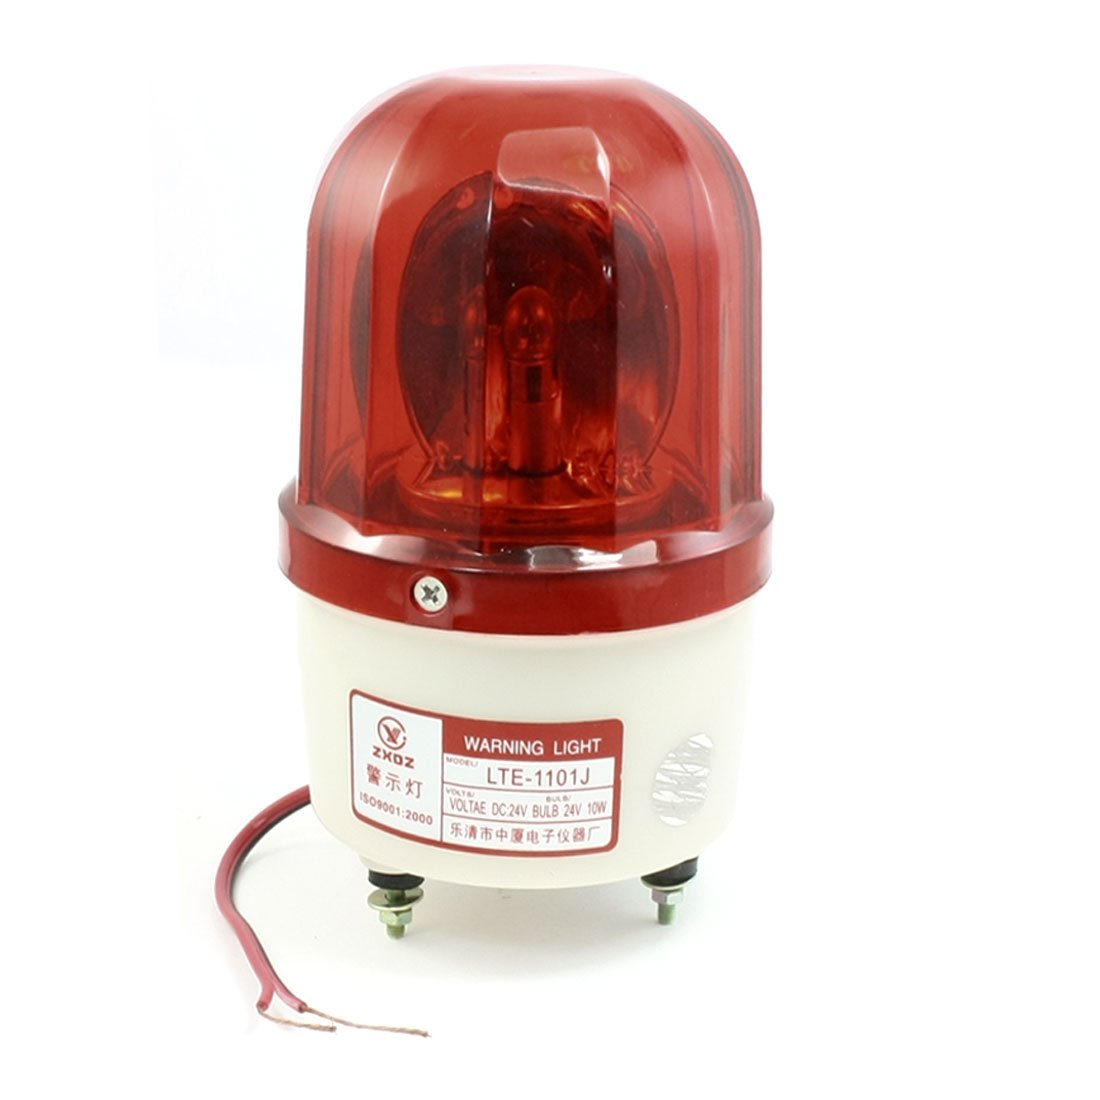 uxcell DC 24V 10W Red Rotating Flashing Light Industrial Signal Warning Lamp